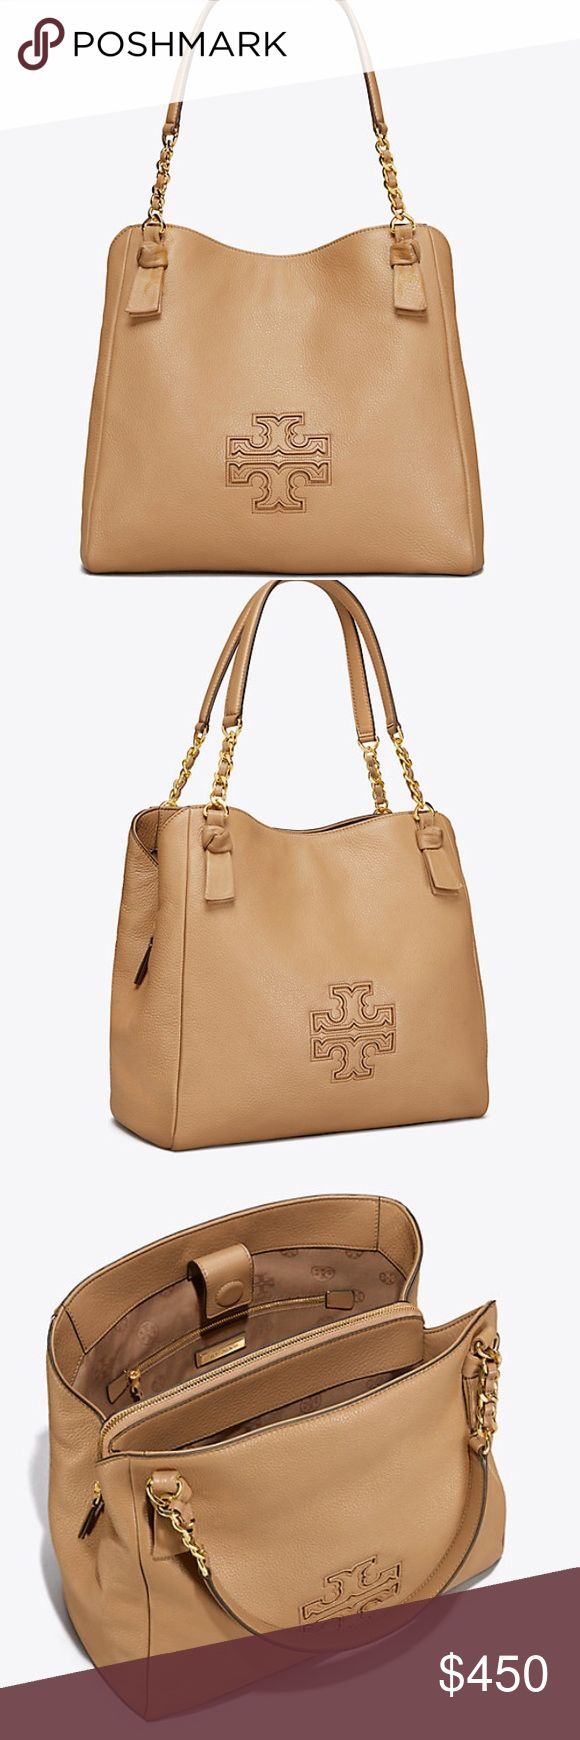 """Tory Burch Harper center zip tote handbag carmel Carmel color Holds a 10"""" tablet, a small umbrella, A4 paper, a continental wallet and an iPhone 6 Plus Pebbled leather Magnetic snap closure with center zipper compartment Leather-and-chain strap with 8.37"""" (21 cm) drop 1 interior zipper pocket, 1 snap pocket, 2 open pockets Height: 12.35"""" (31 cm) Length: 12.75"""" (32 cm) Depth: 6.37"""" (16 cm) Tory Burch Bags Totes"""